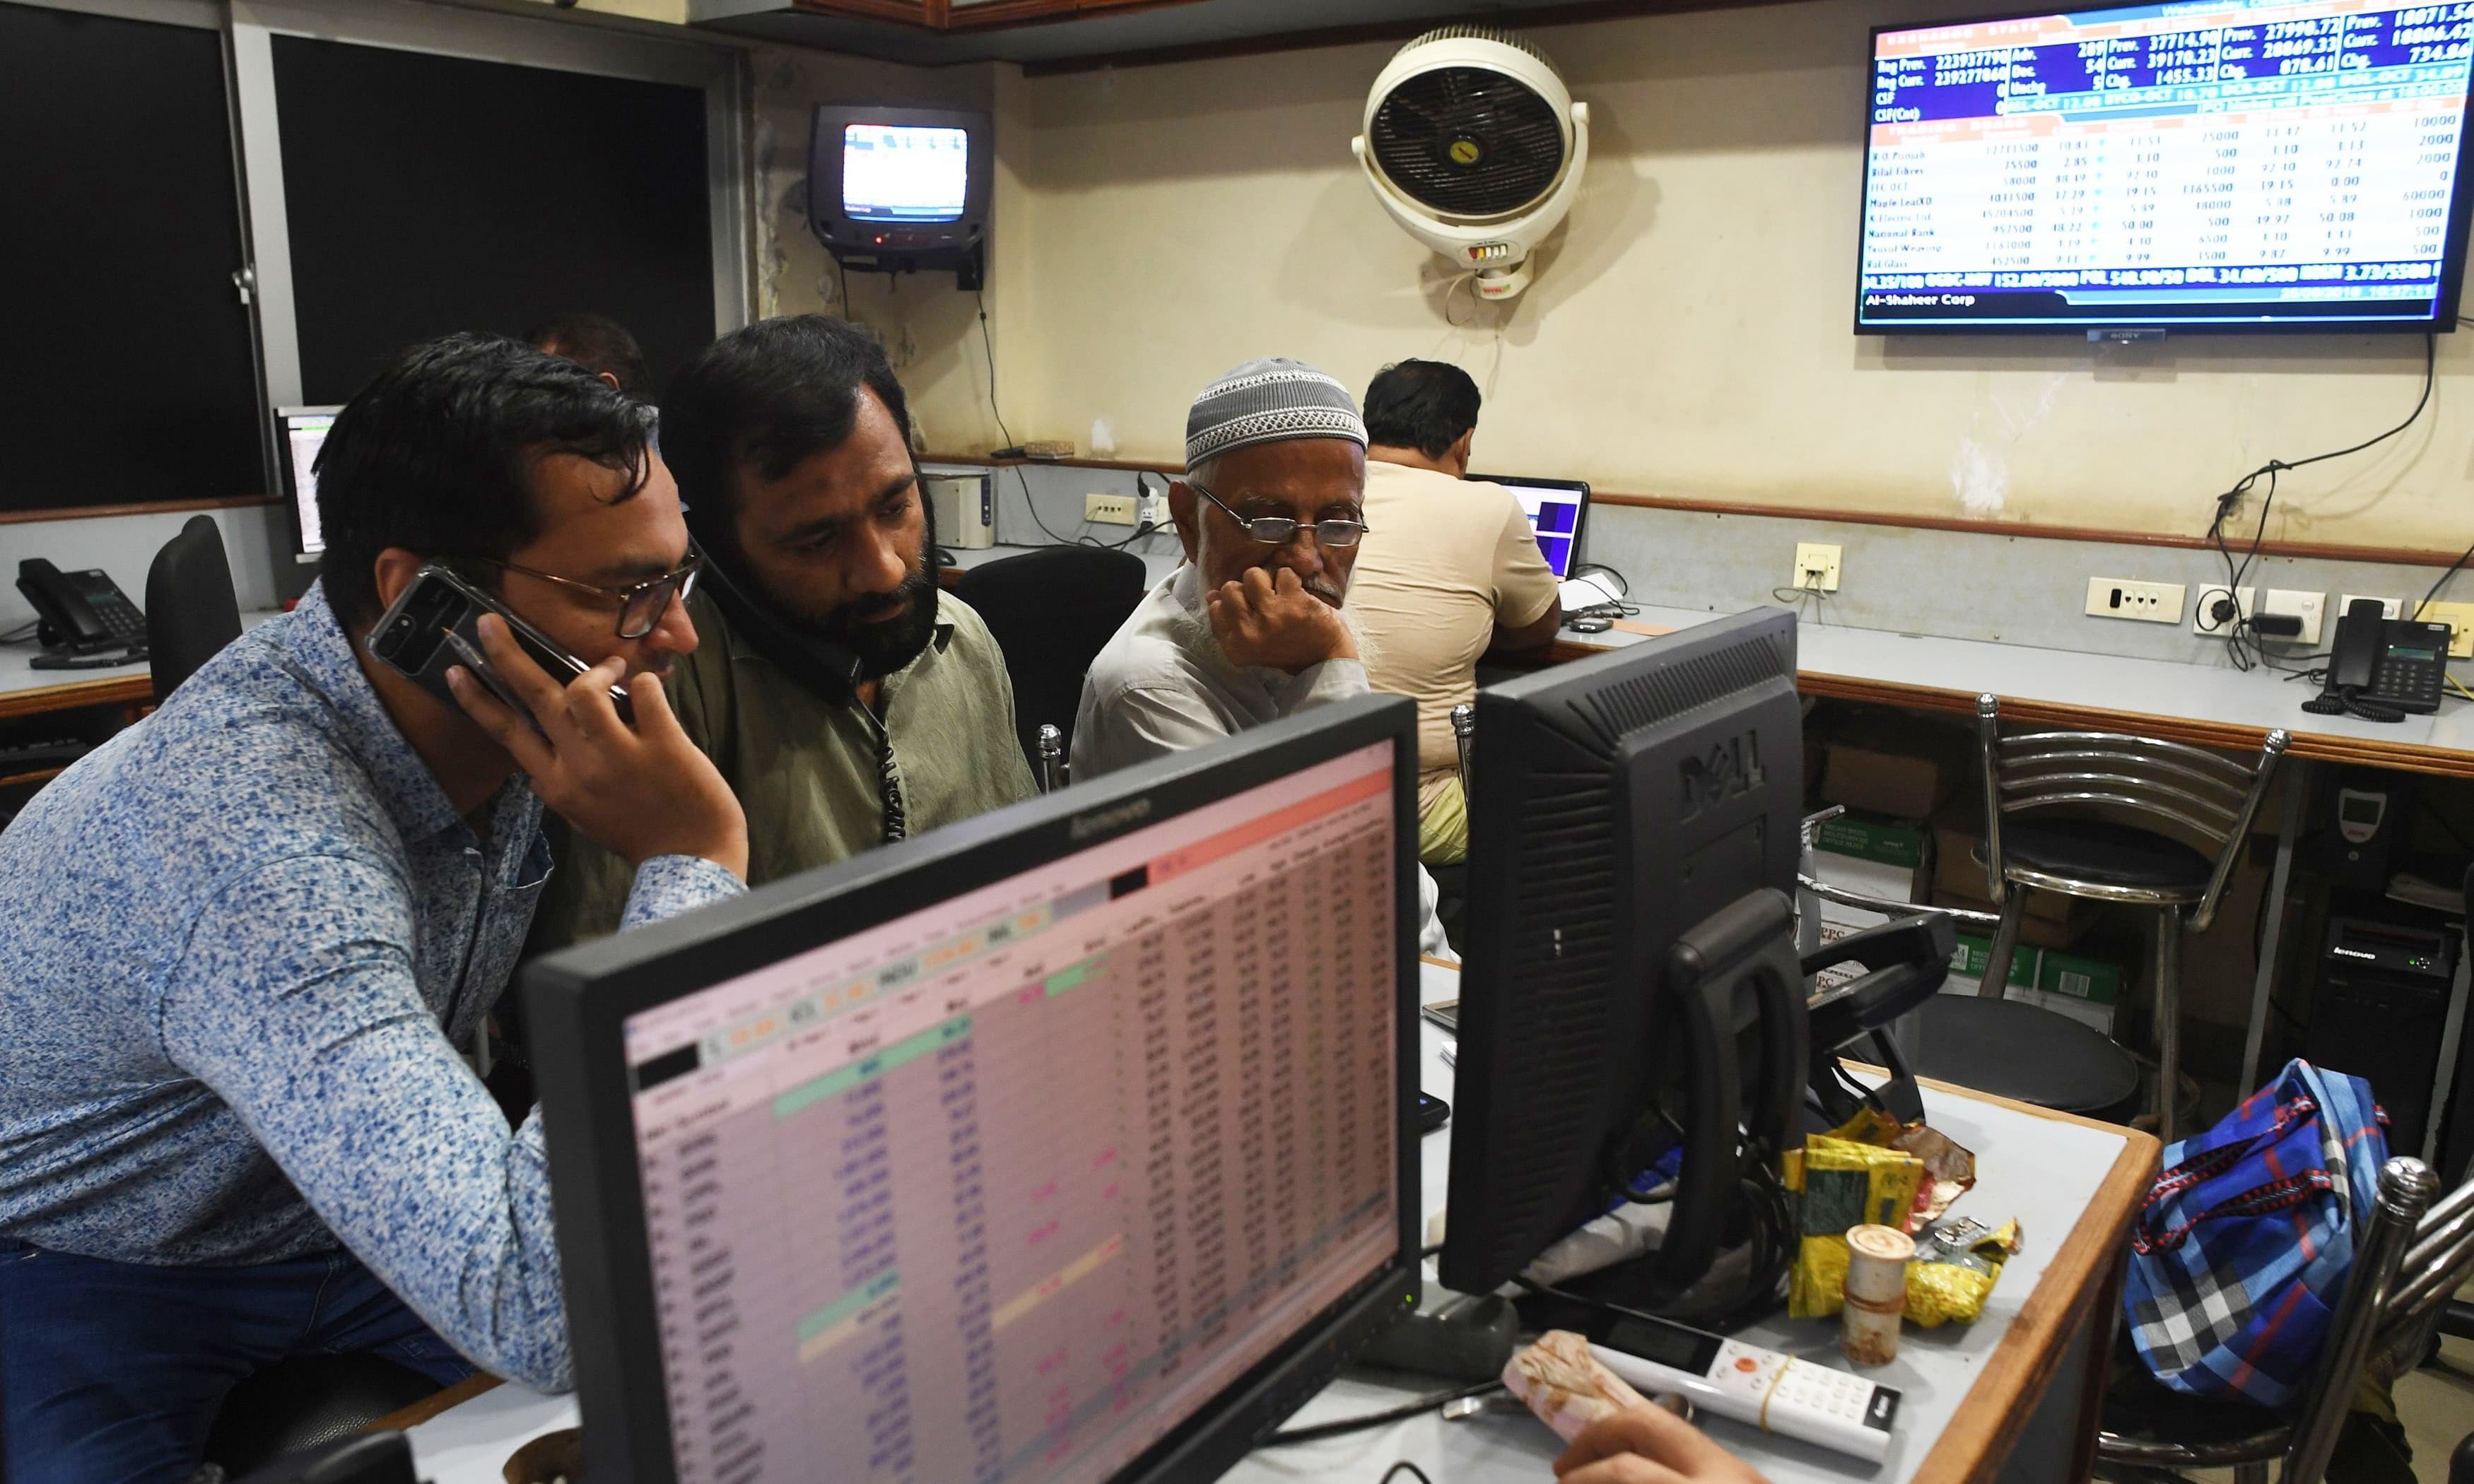 In this file photo, stockbrokers watch the latest share prices on their monitors during a trading session at the Pakistan Stock Exchange (PSX) in Karachi. — AFP/File